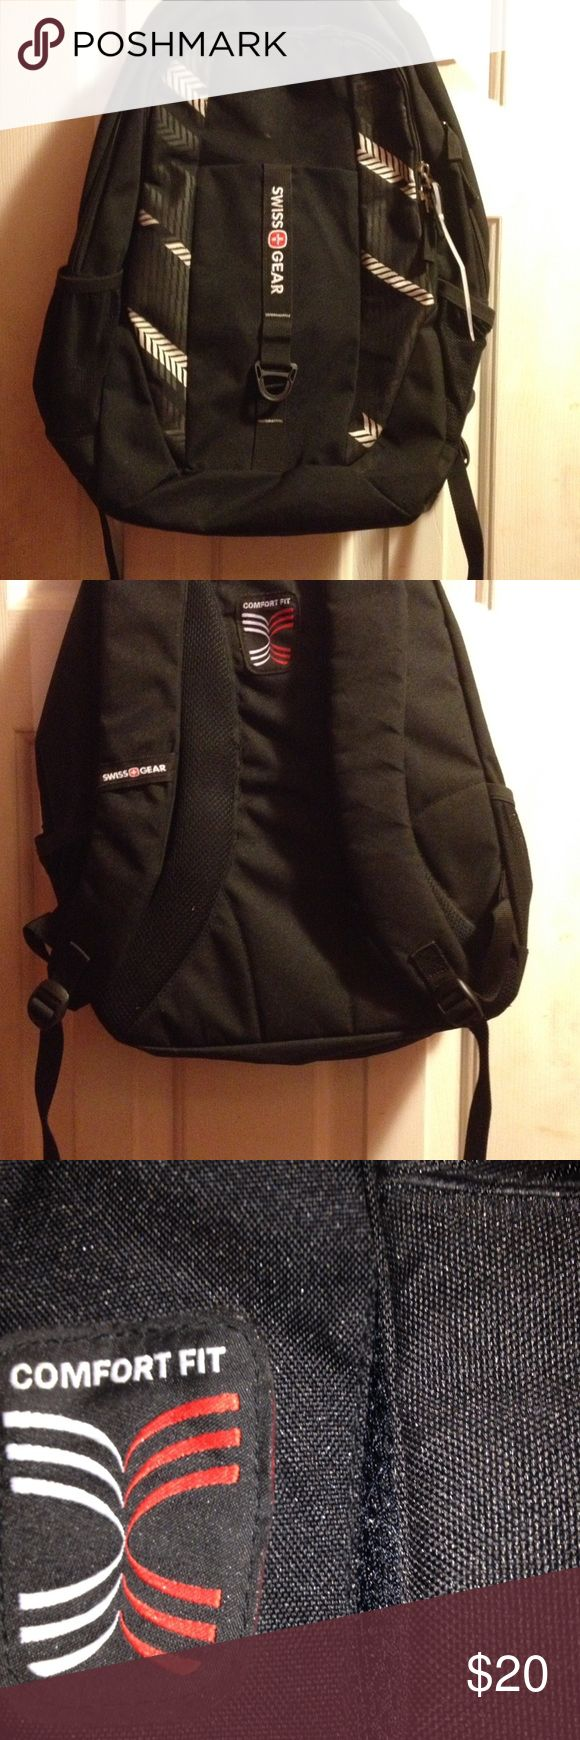 Swiss Gear backpack Swiss gear backpack. Brand new without tags. Bags Backpacks